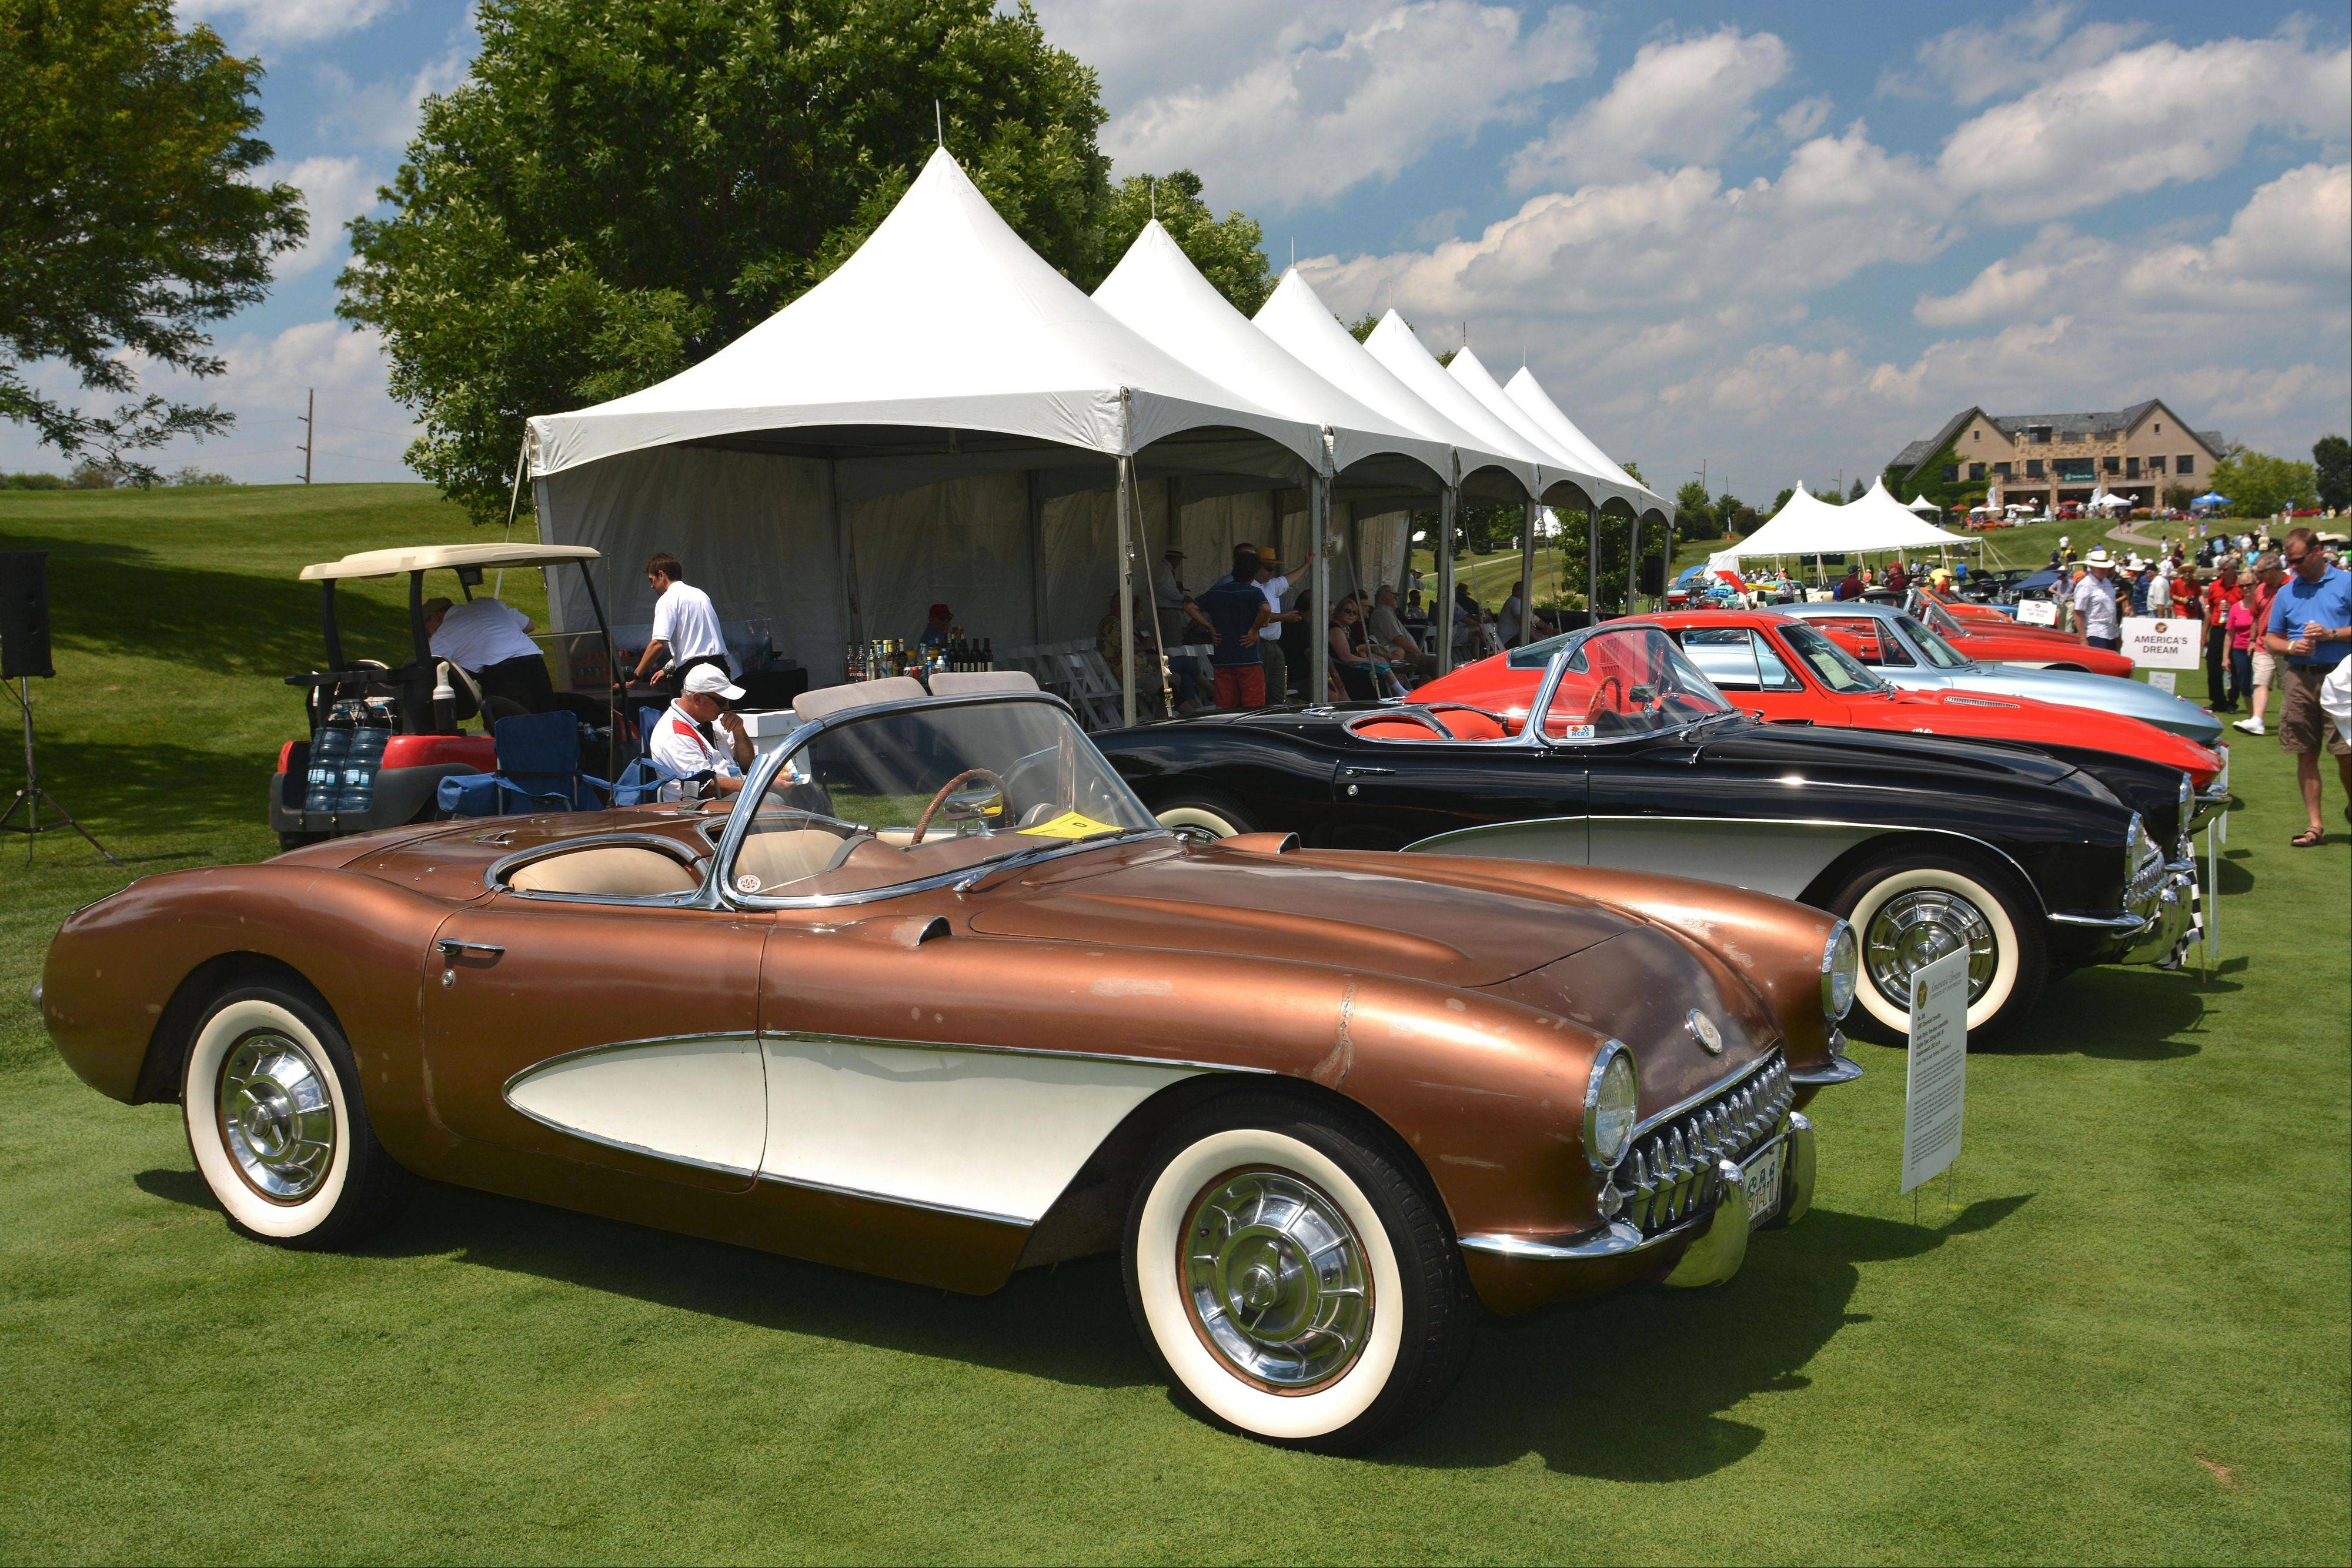 A designated display area was organized to mark the 50th anniversary of the Chevrolet Corvette.